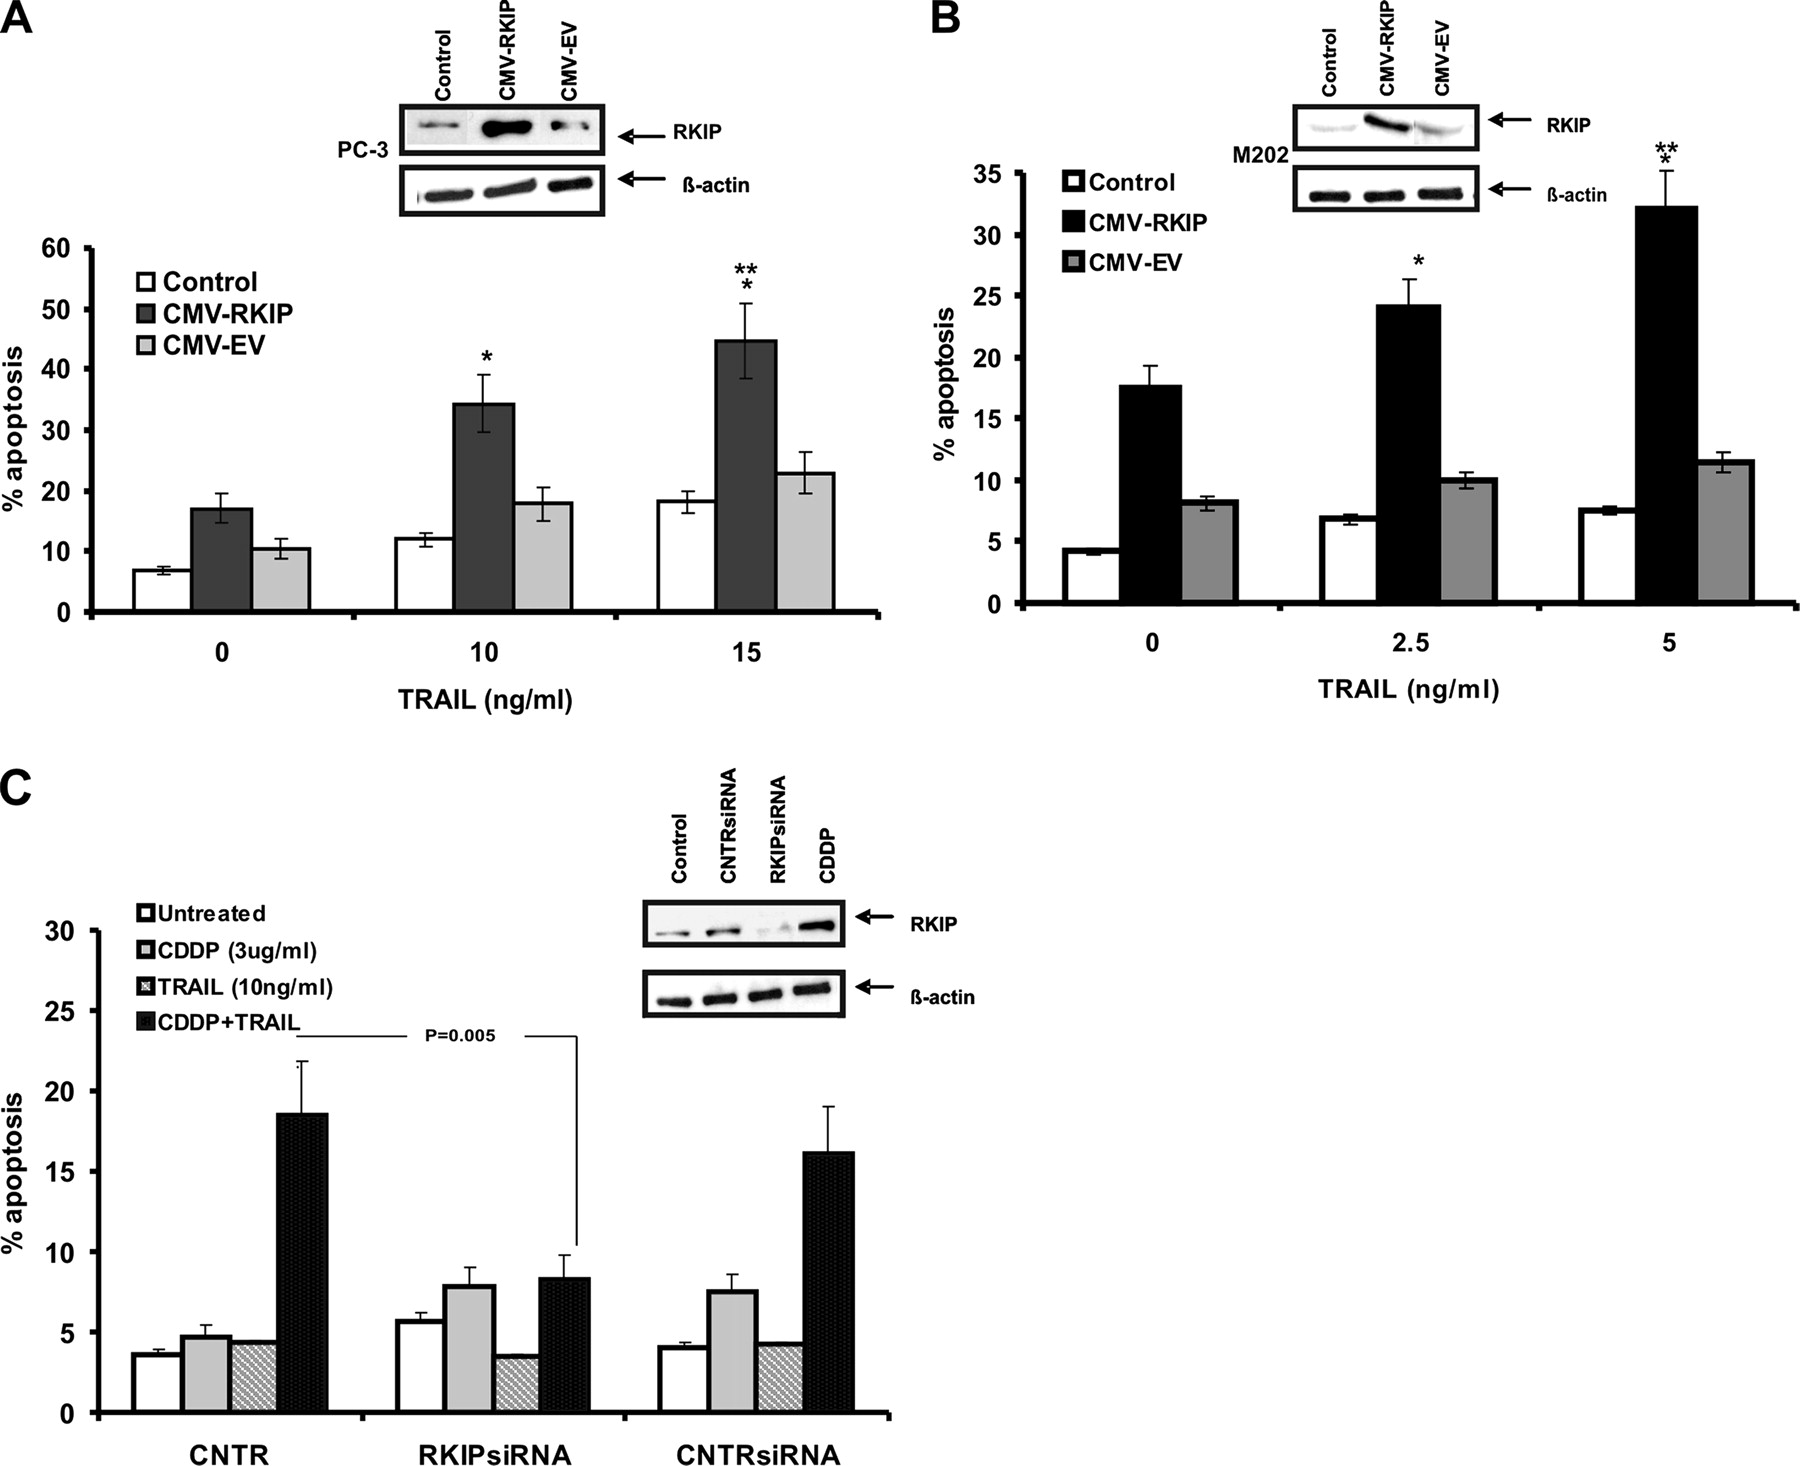 Overexpression of Soluble TRAIL Induces Apoptosis in Human